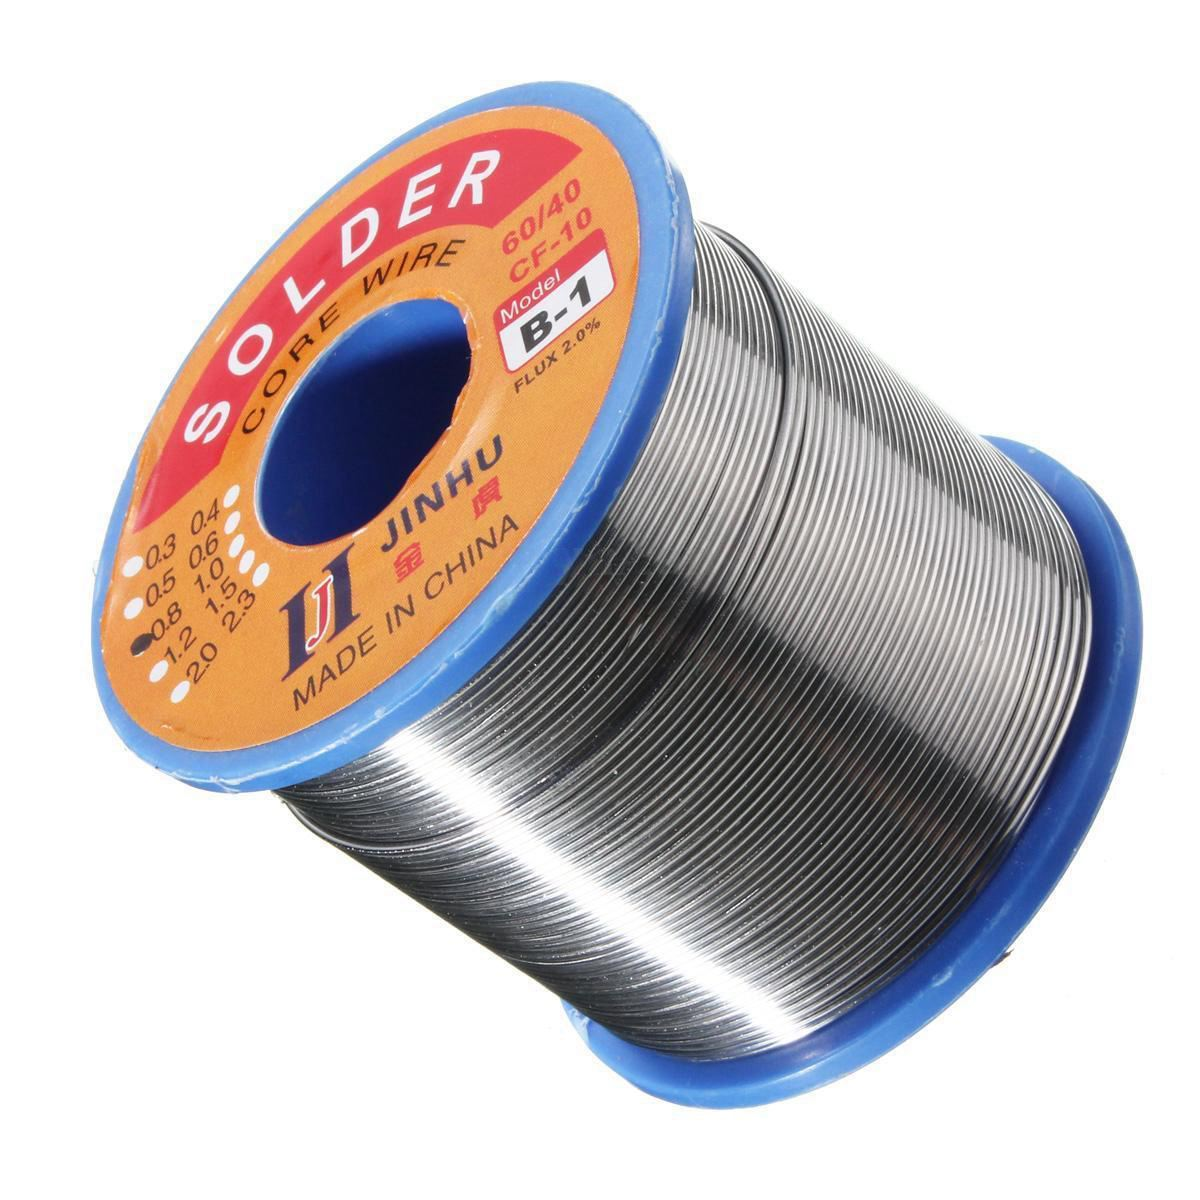 купить Practical JINHU 500g 60/40 Tin lead Solder Wire Rosin Core Soldering 2% Flux, 0.7Mm 1 Reel по цене 721.91 рублей